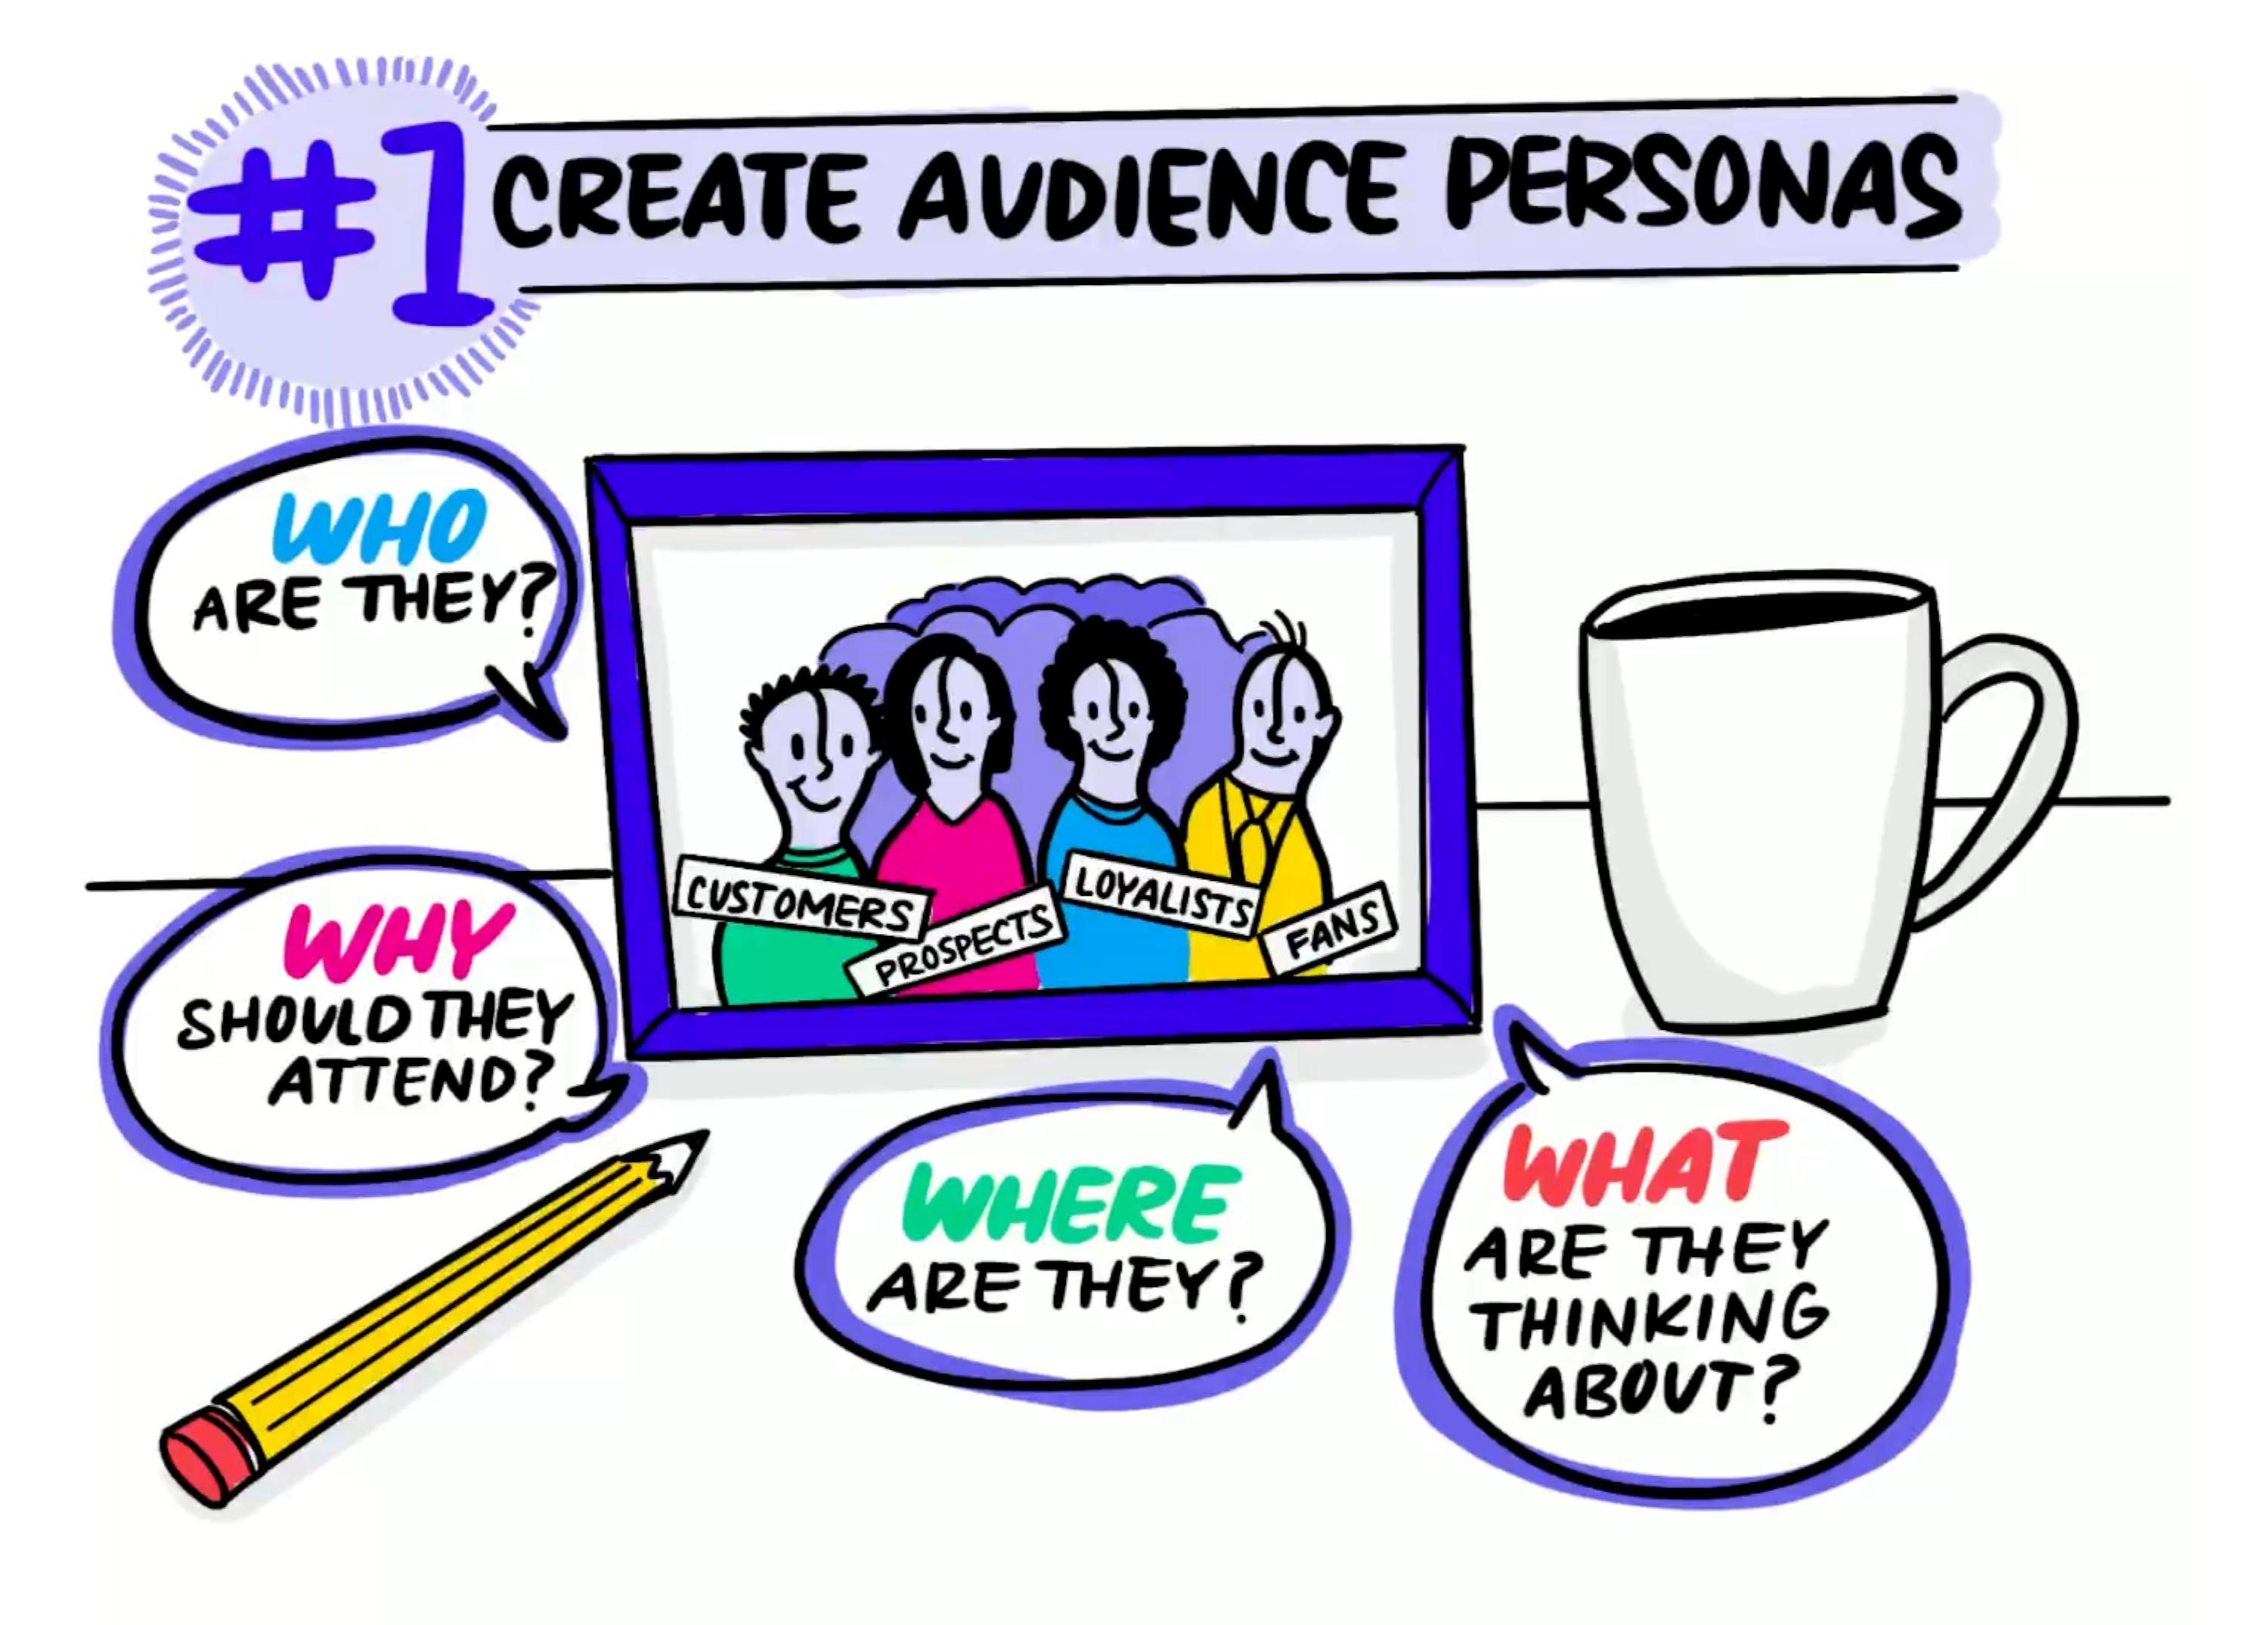 event audience personas